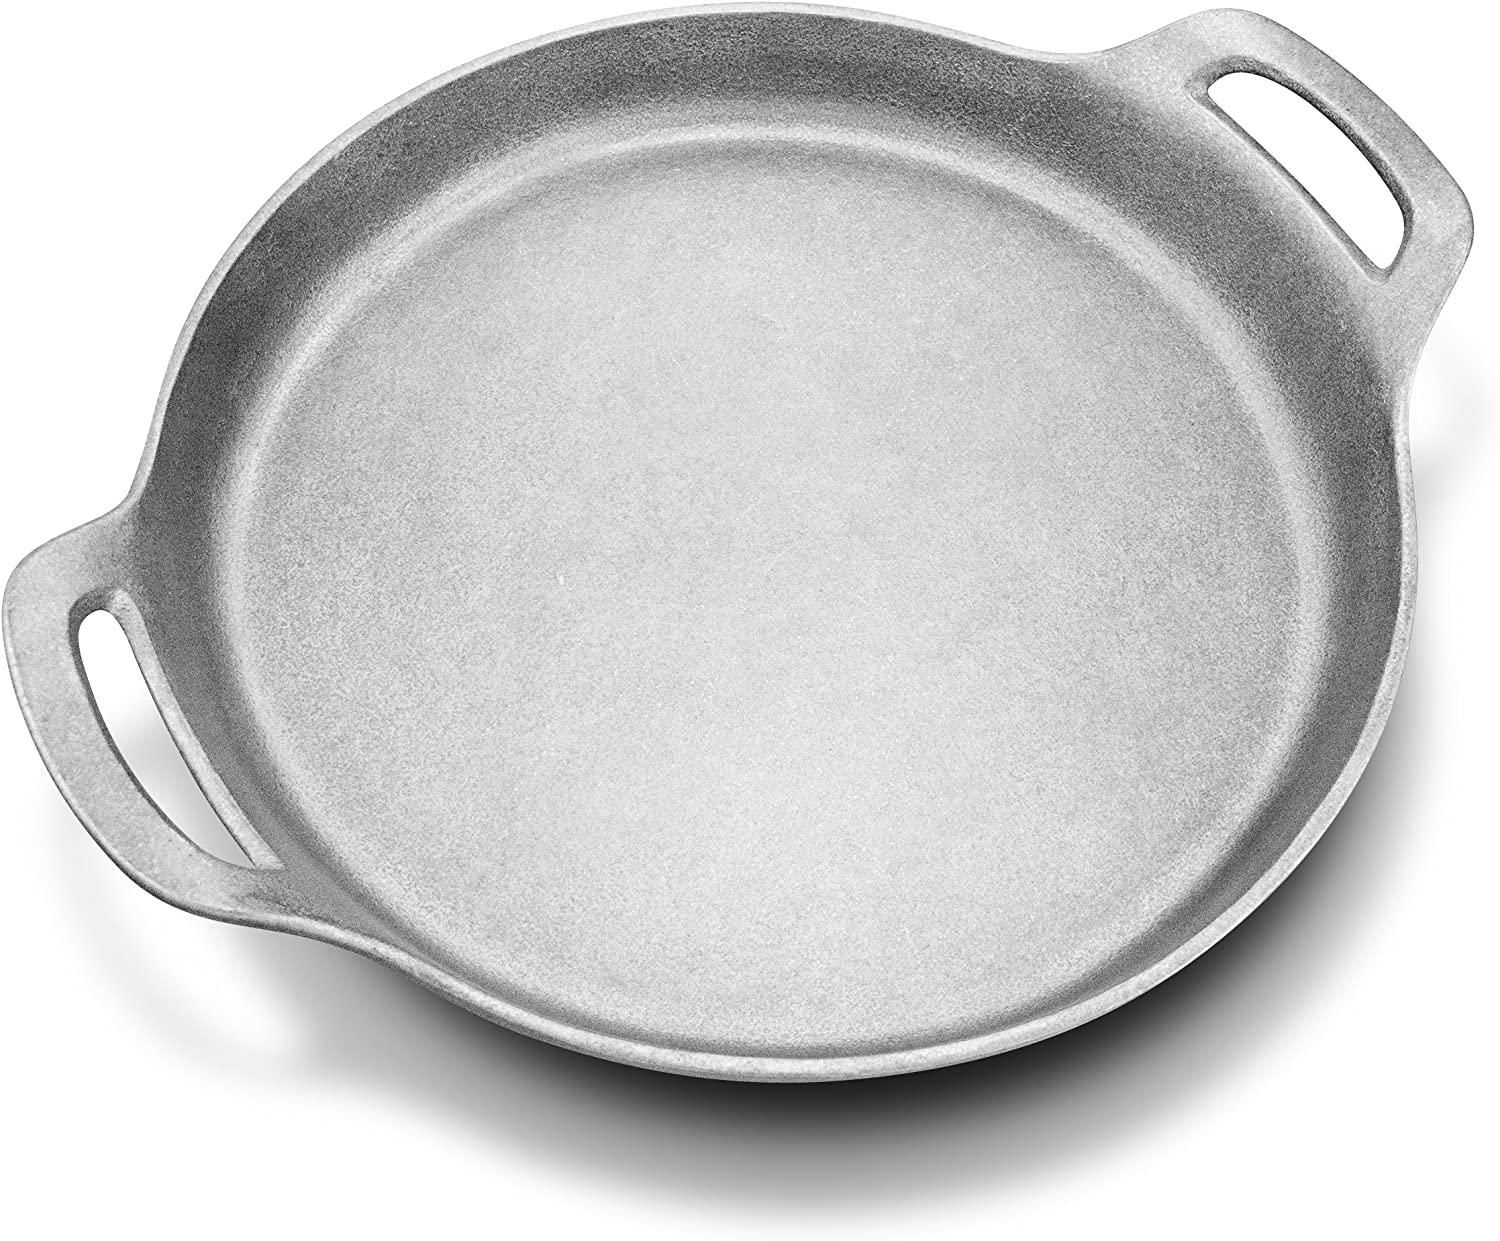 Wilton New product!! Armetale Gourmet Grillware Round New arrival with Handle Pan Sauté